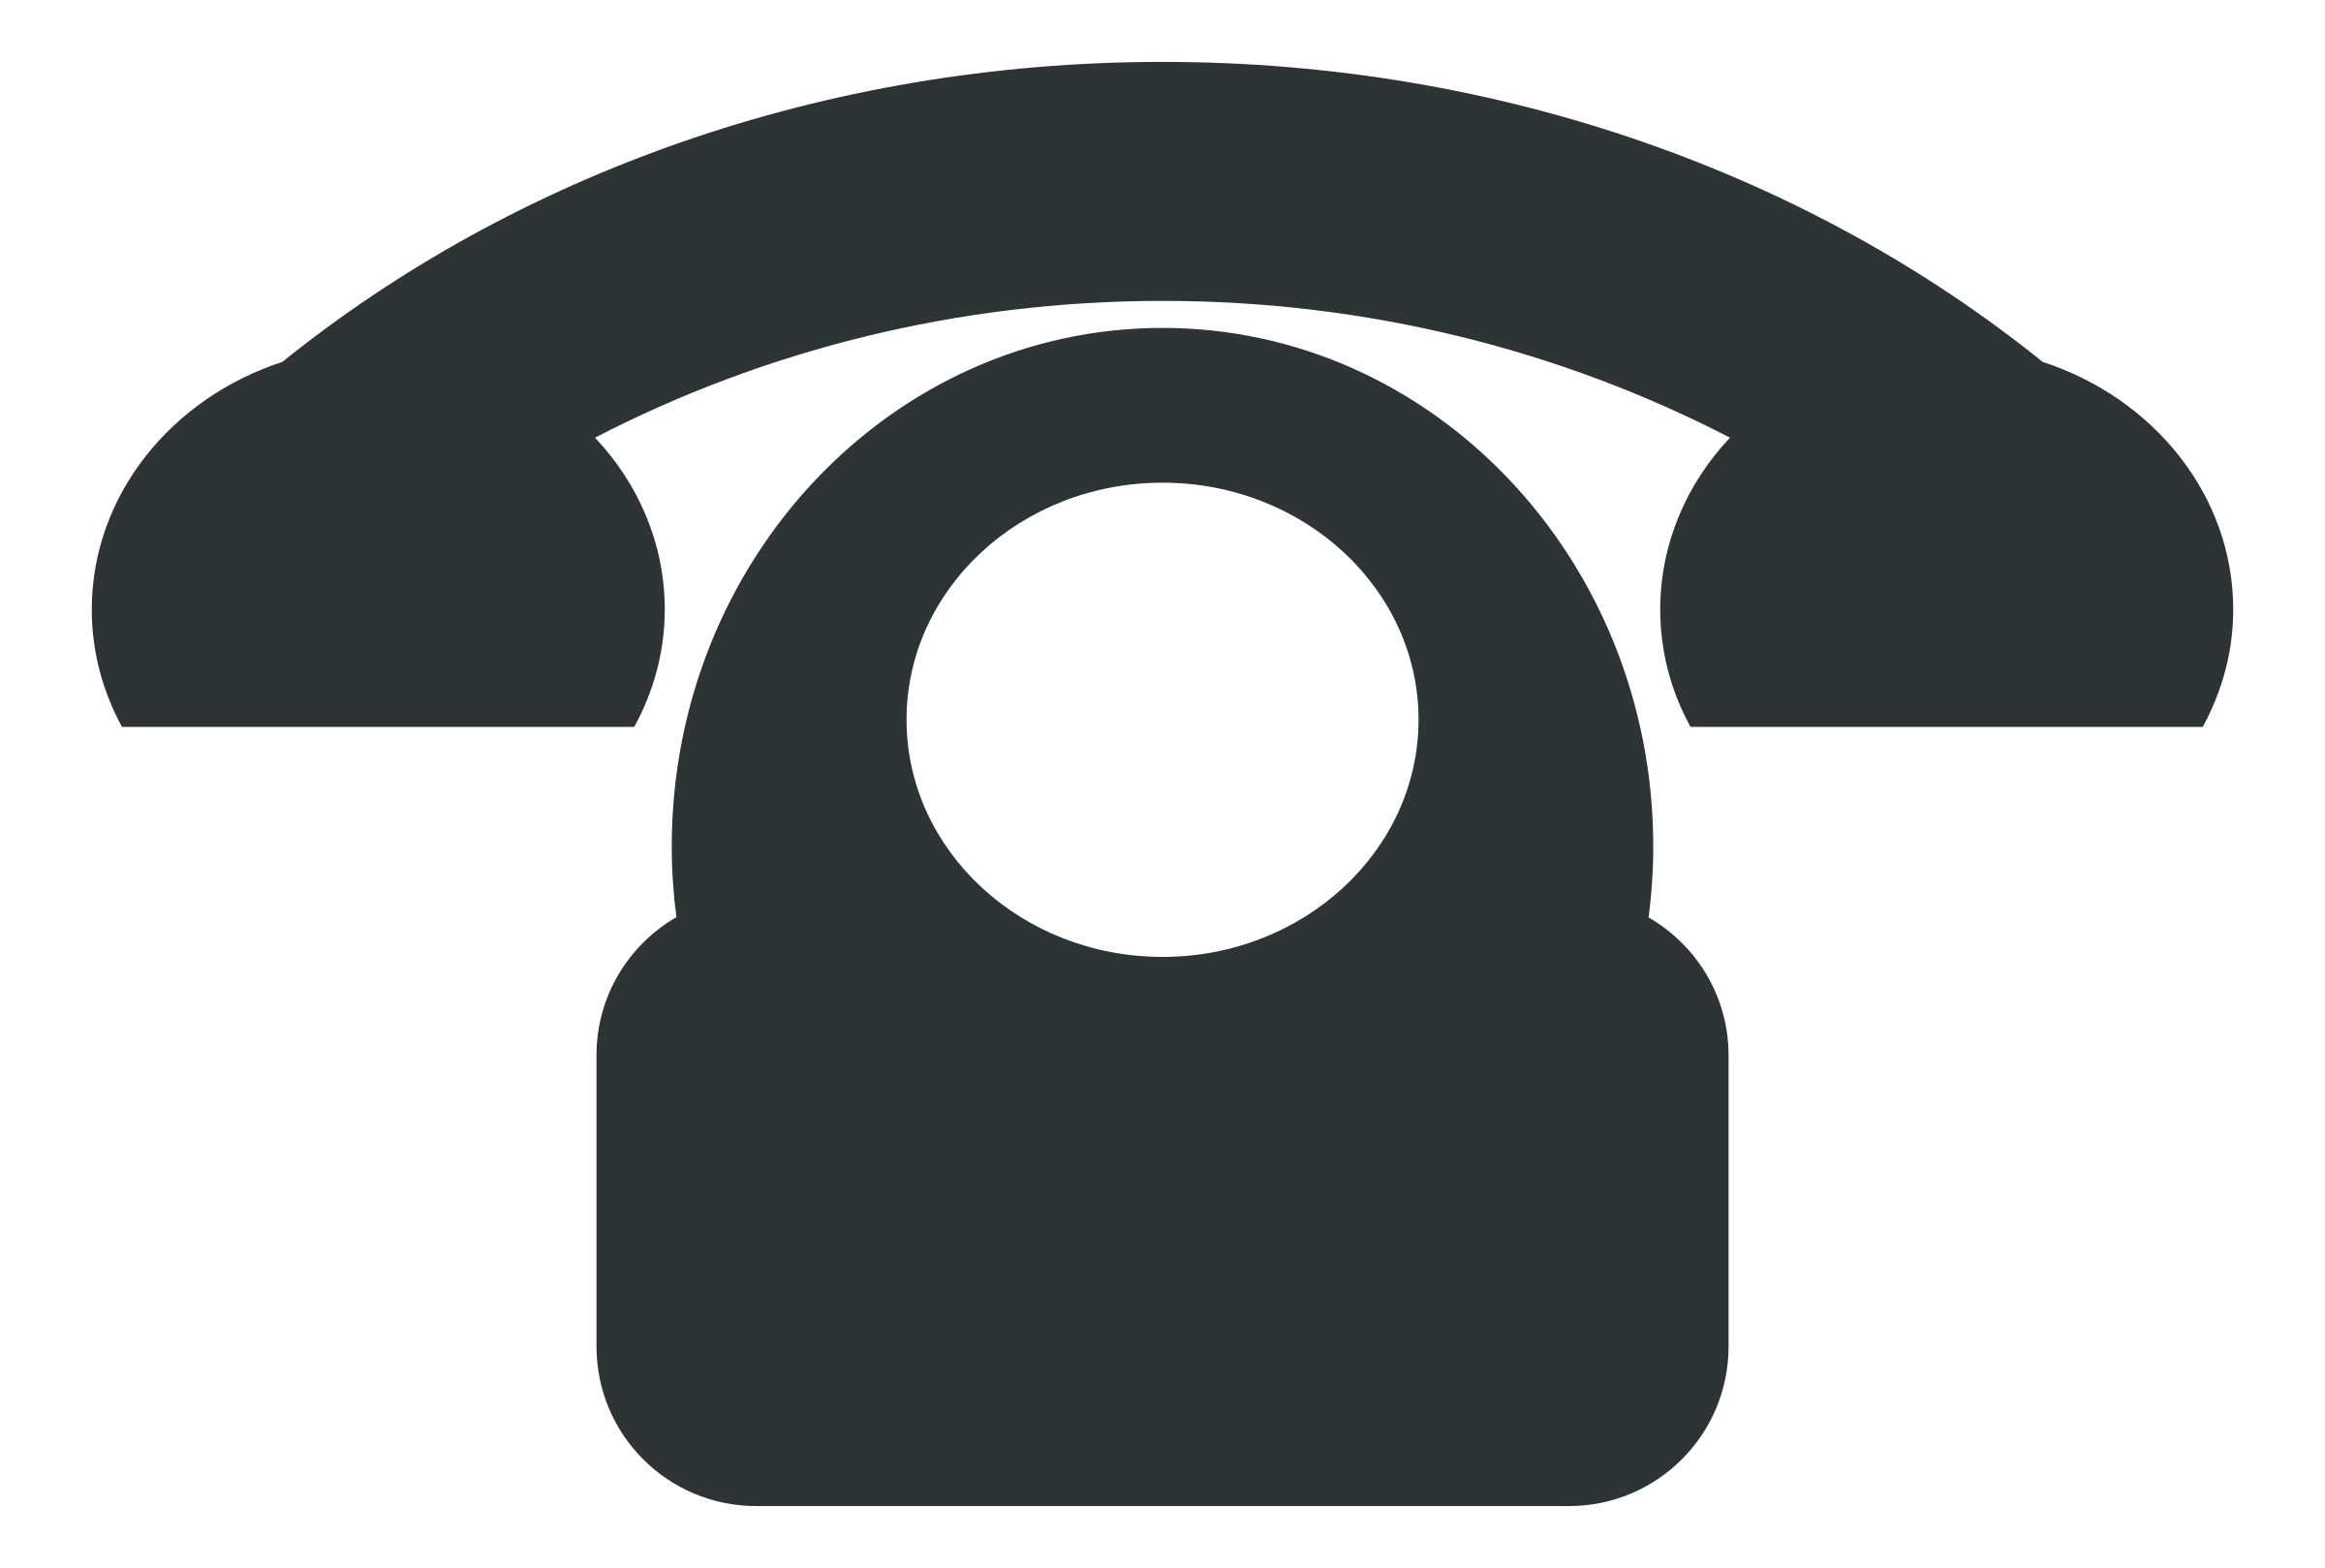 Clipart telephone number. Phone big image png